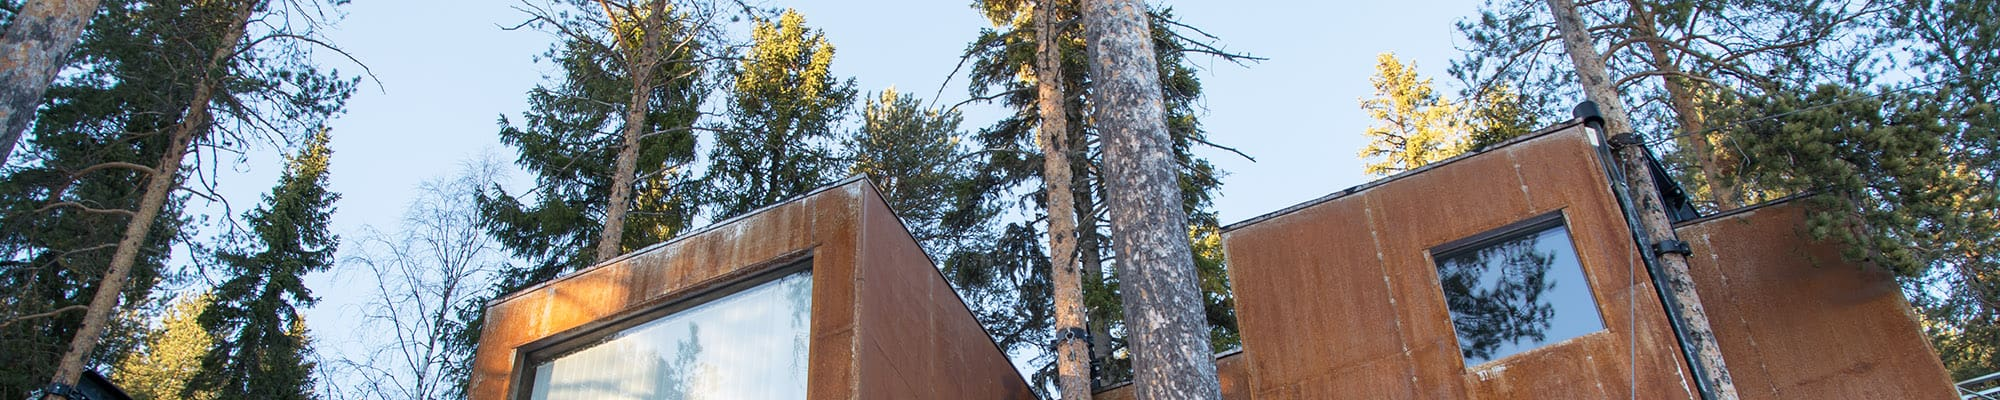 Dragonfly Treehotel © NORDIC